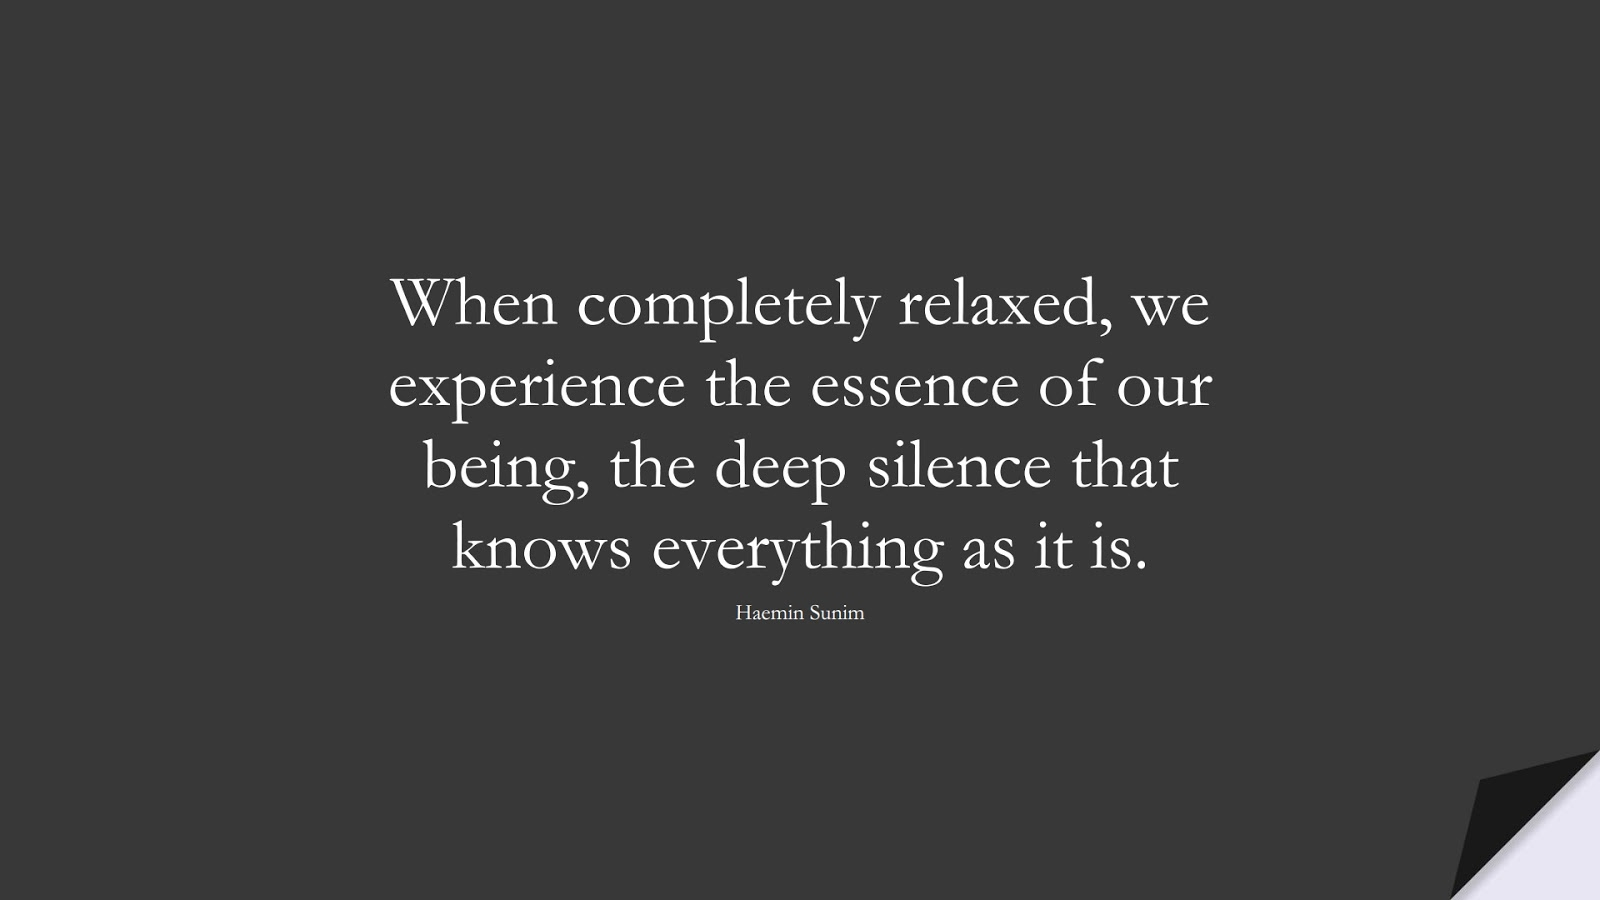 When completely relaxed, we experience the essence of our being, the deep silence that knows everything as it is. (Haemin Sunim);  #CalmQuotes